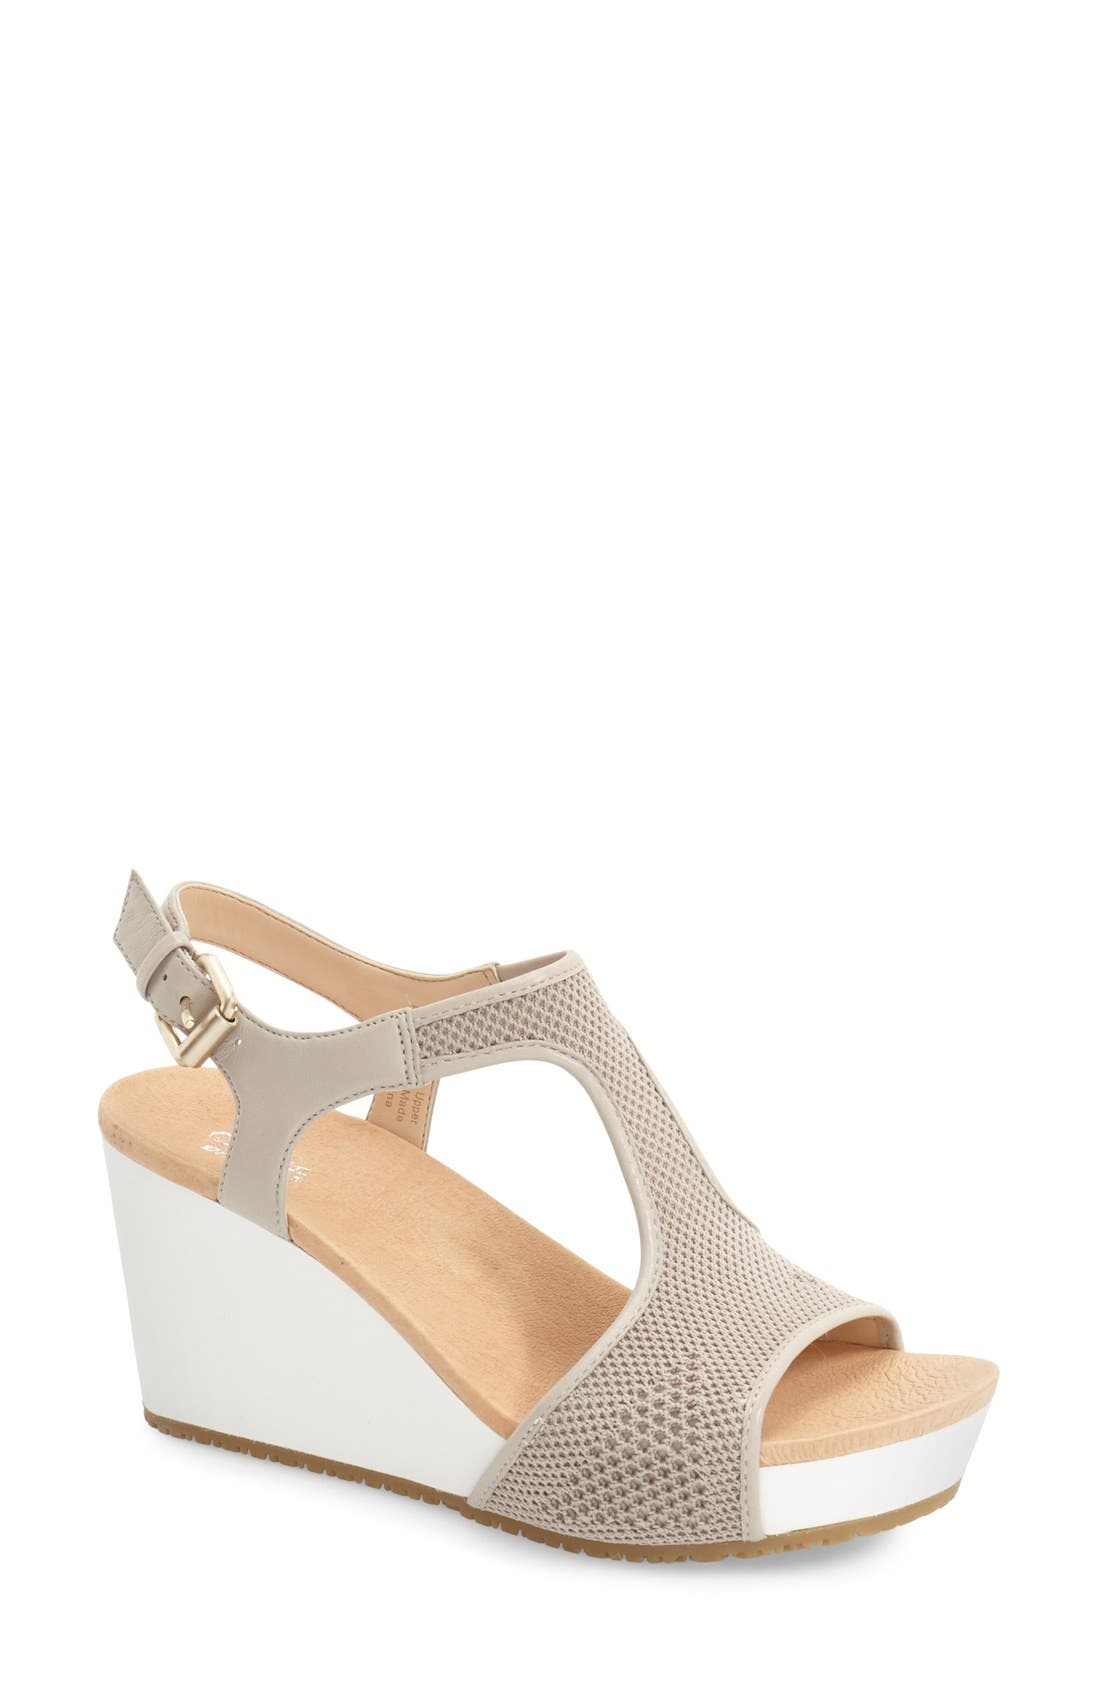 DR. SCHOLL'S 'Original Collection Wiley' Wedge Sandal